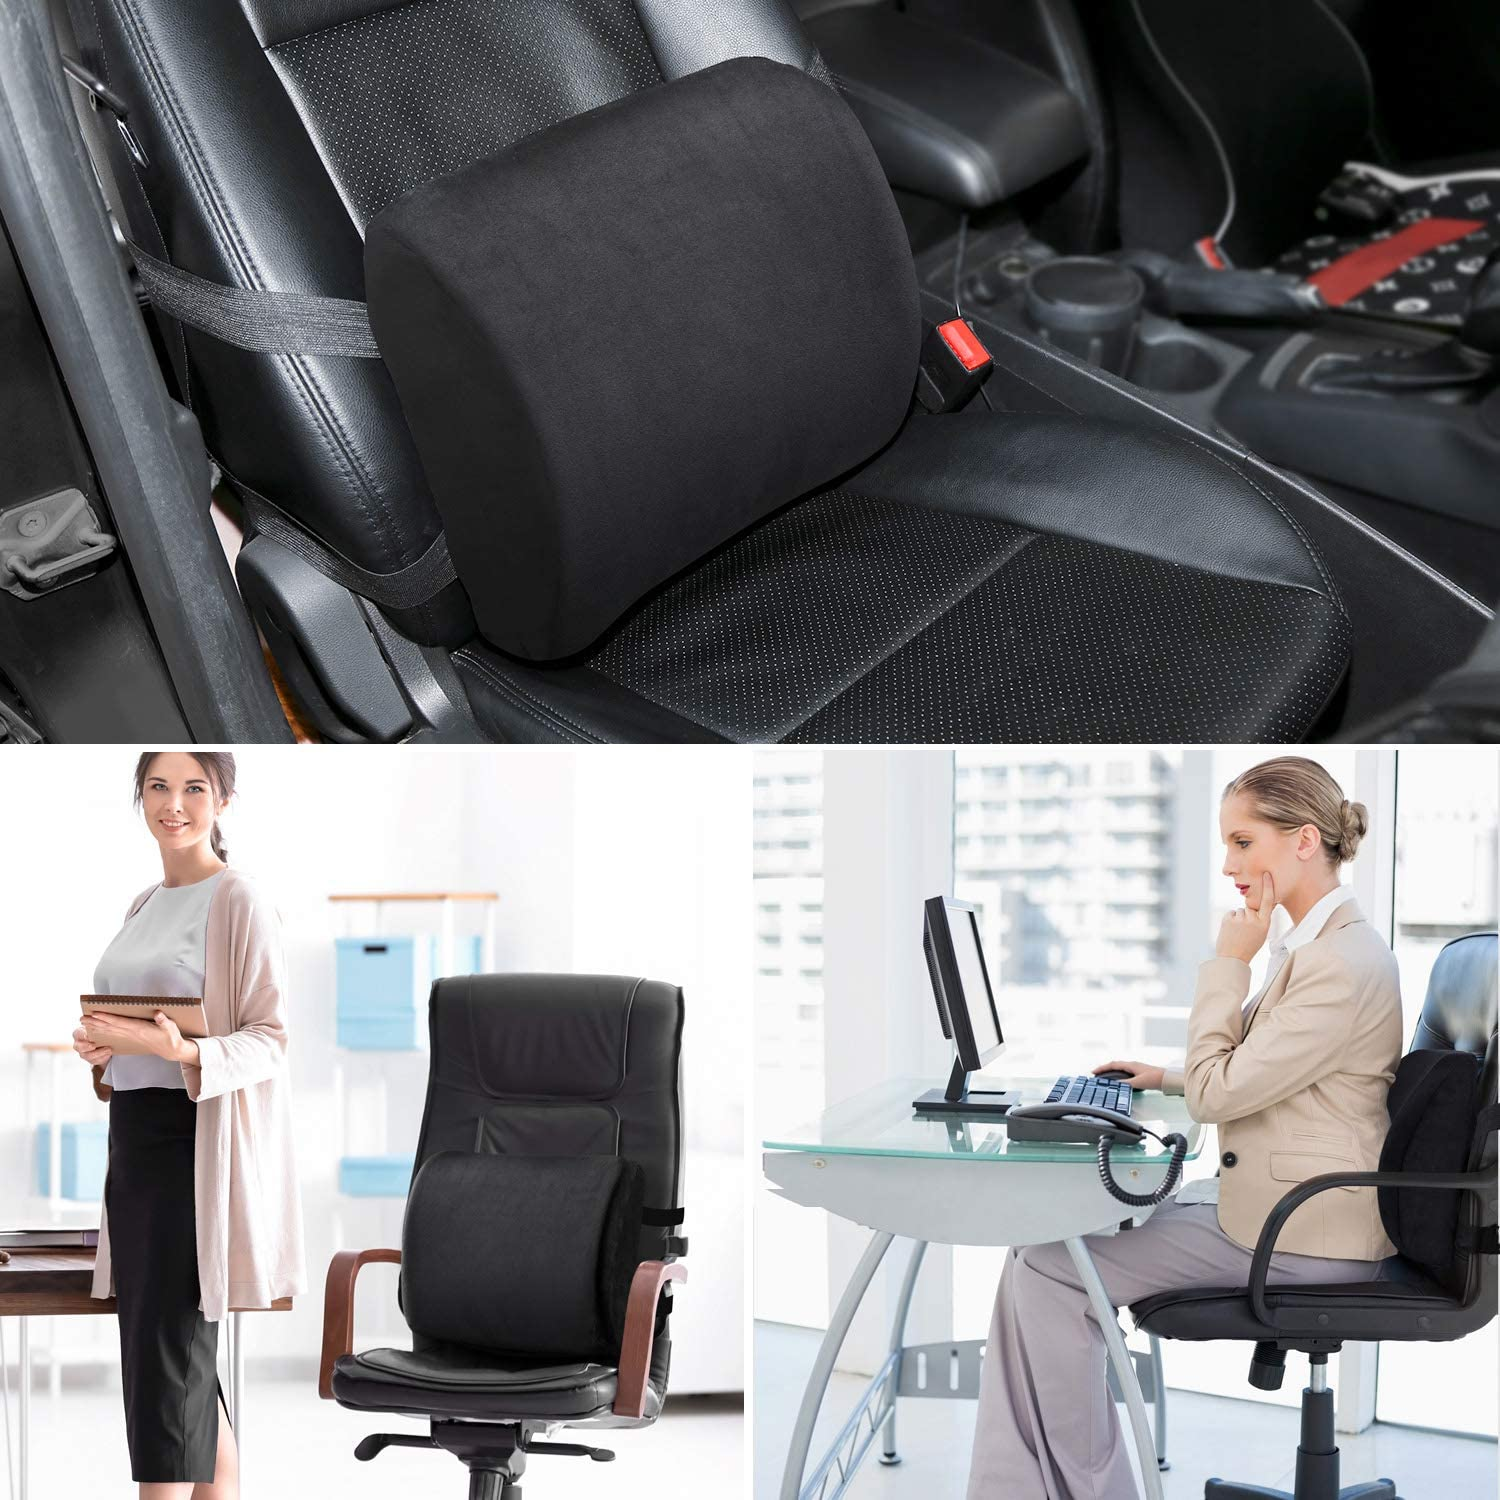 ENKEEO Memory Foam Lumbar Support Cushion with Contoured Ergonomic Design for Back Pain and Posture Correct Use on Office Car and Home